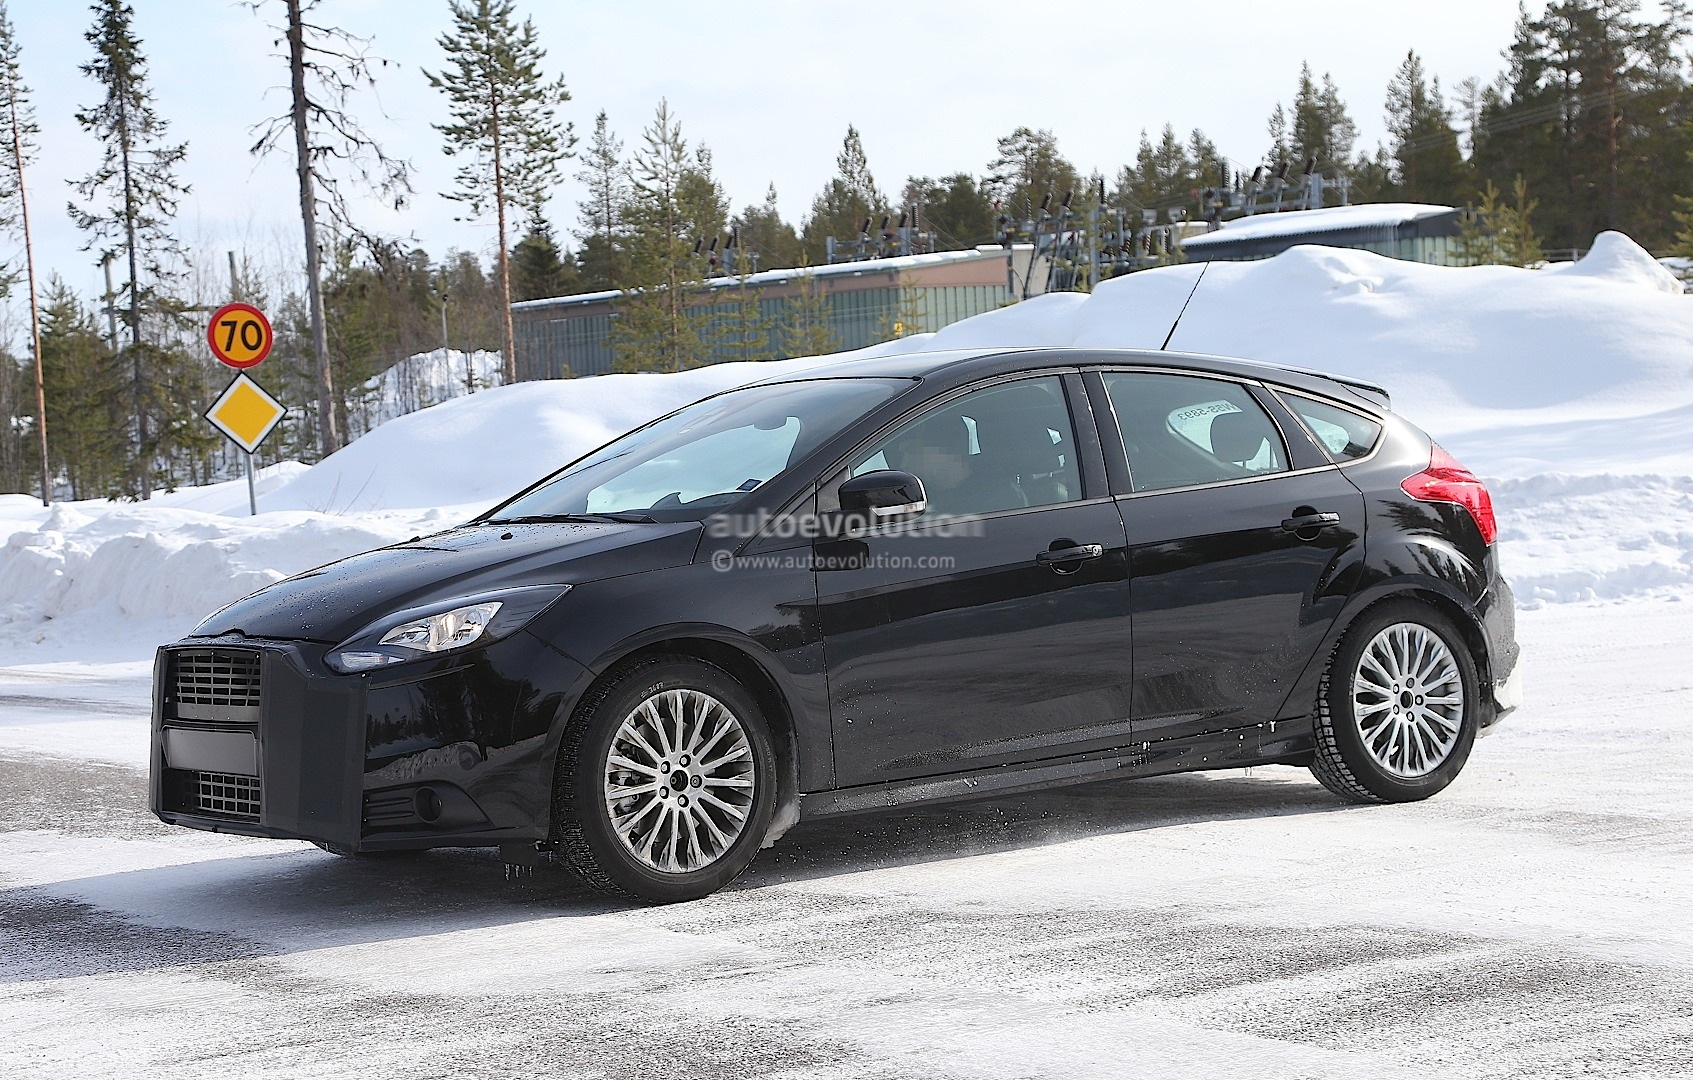 2015 Ford Focus RS #4/7